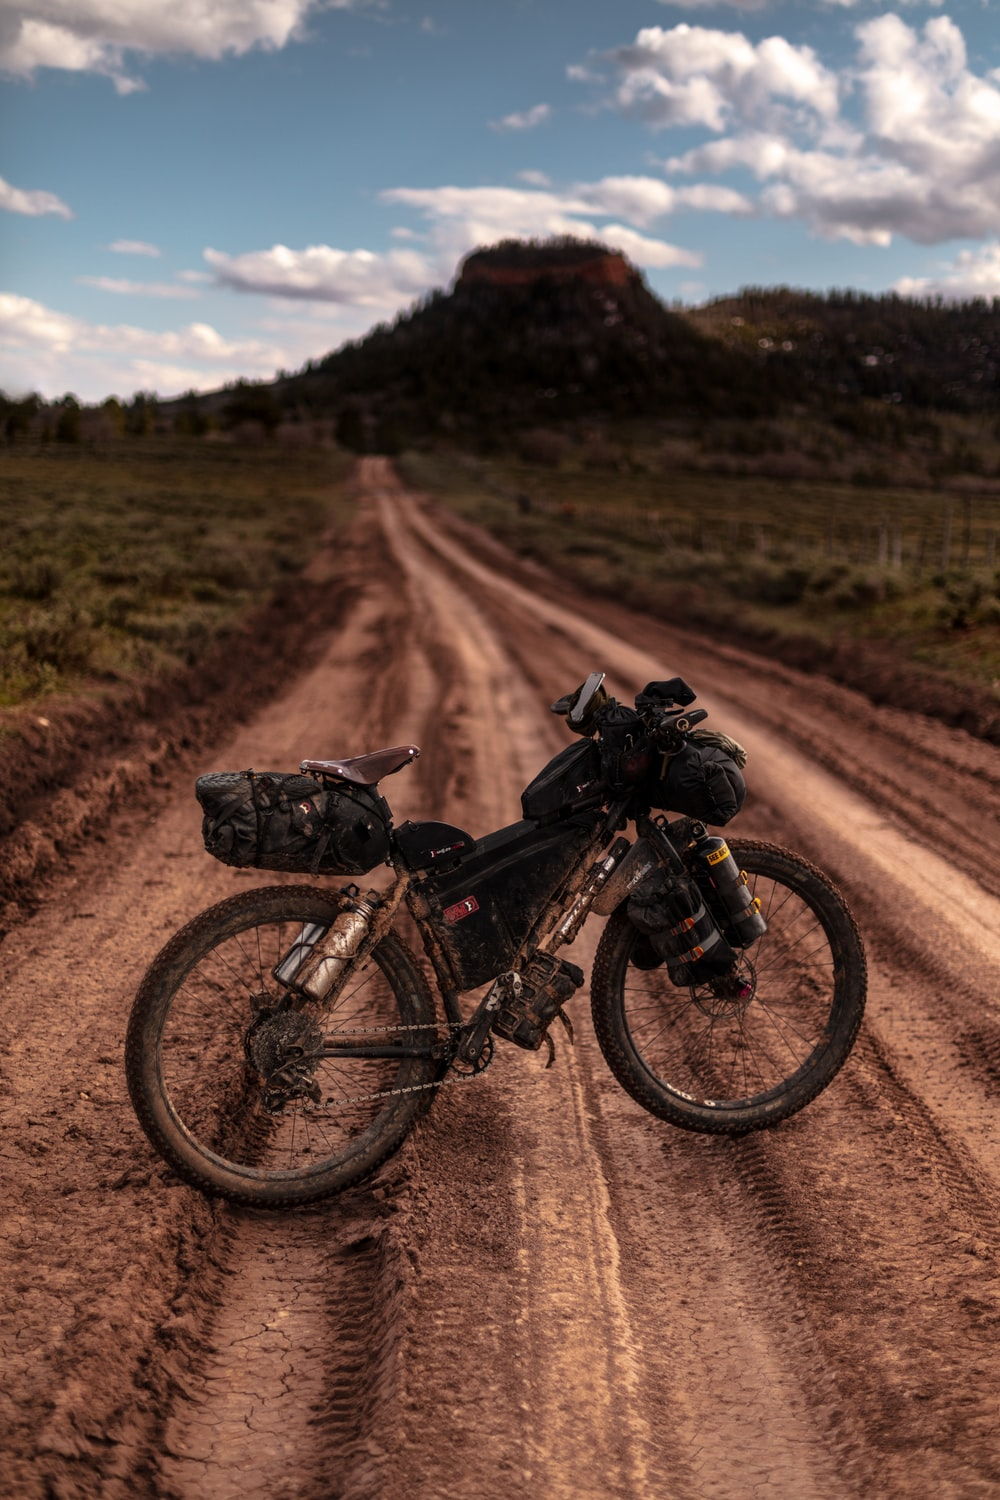 black motorized bicycle on dirt road